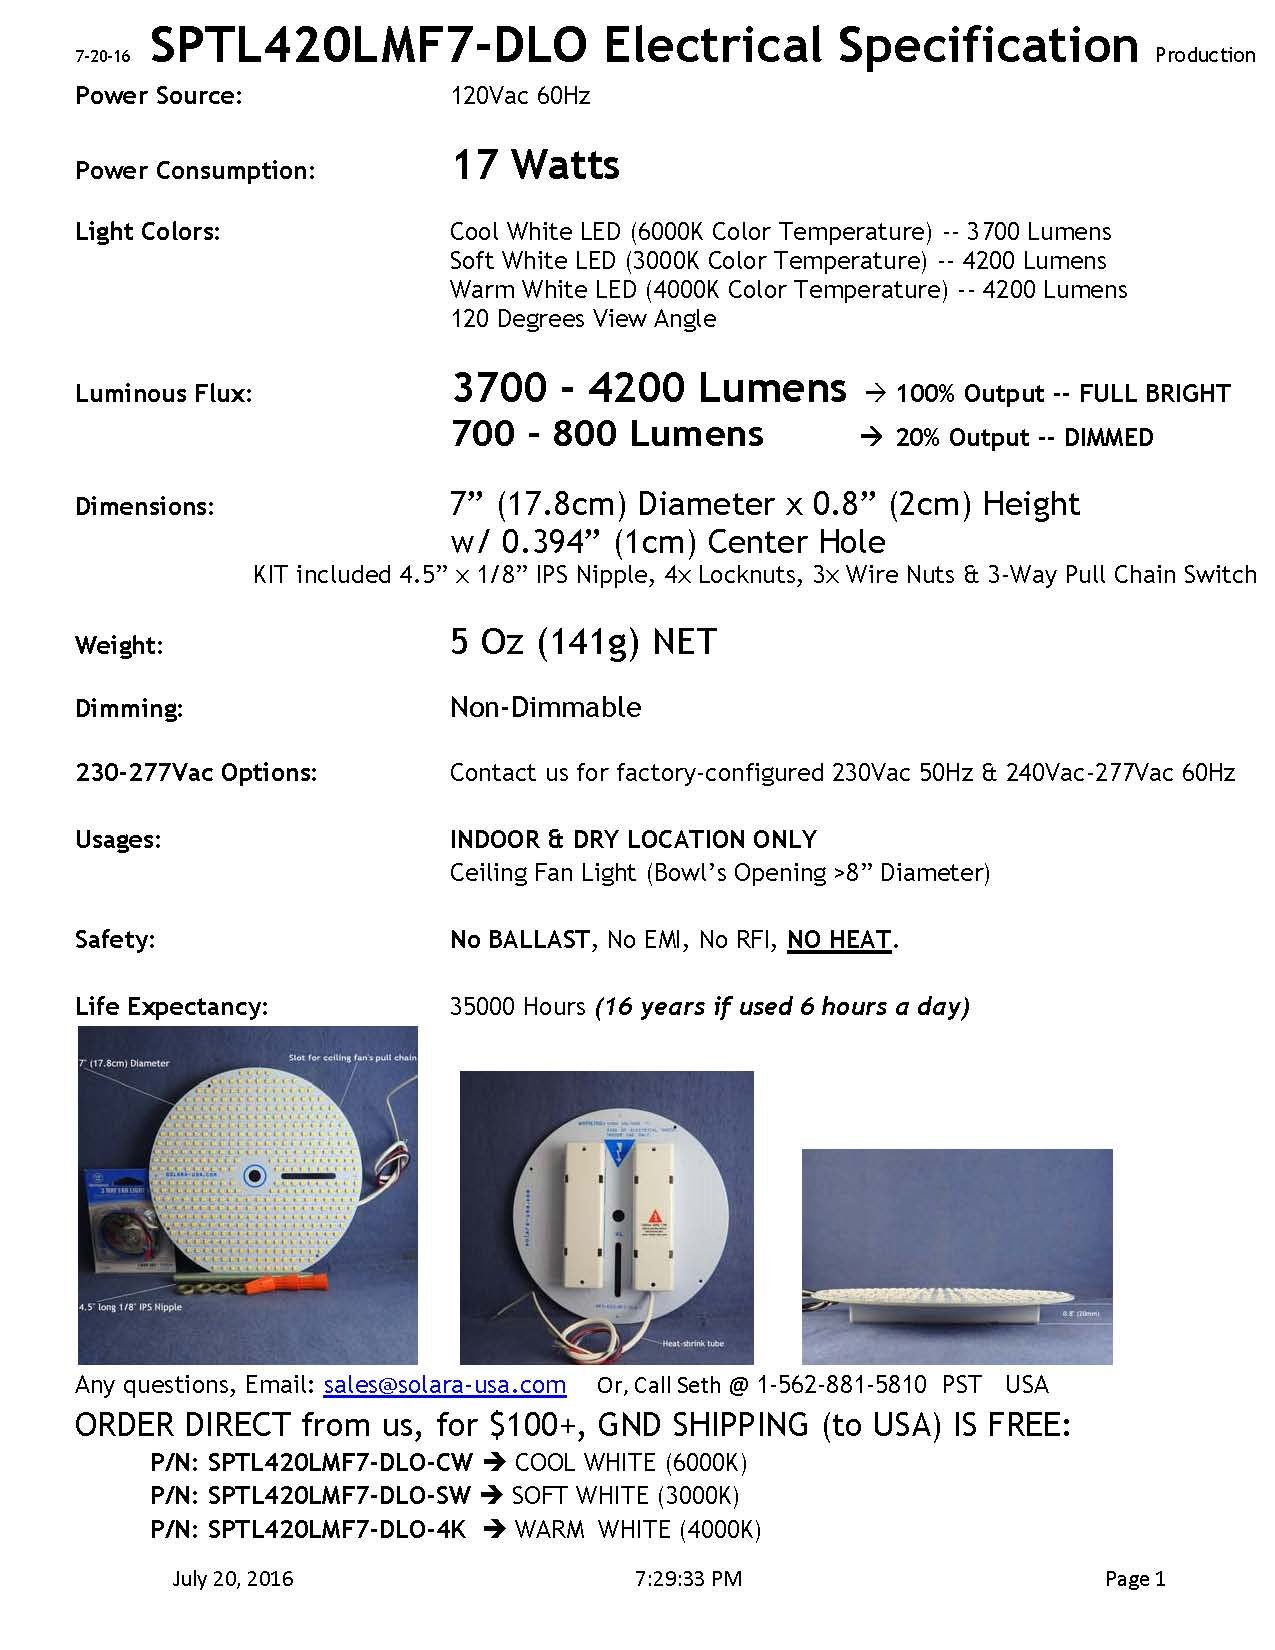 Frosted Glass Bowl w/ LED Panel KIT w/ DUAL LIGHT OUTPUT -- 7'' Diameter -- SOFT WHITE (3000K), 4000lumens 17Watts. For ANTIQUE BRASS Ceiling Fan, P/N: SPTL420LMF7-DLO-SW+KIT#85173-ABR by SOLARA-USA (Image #7)